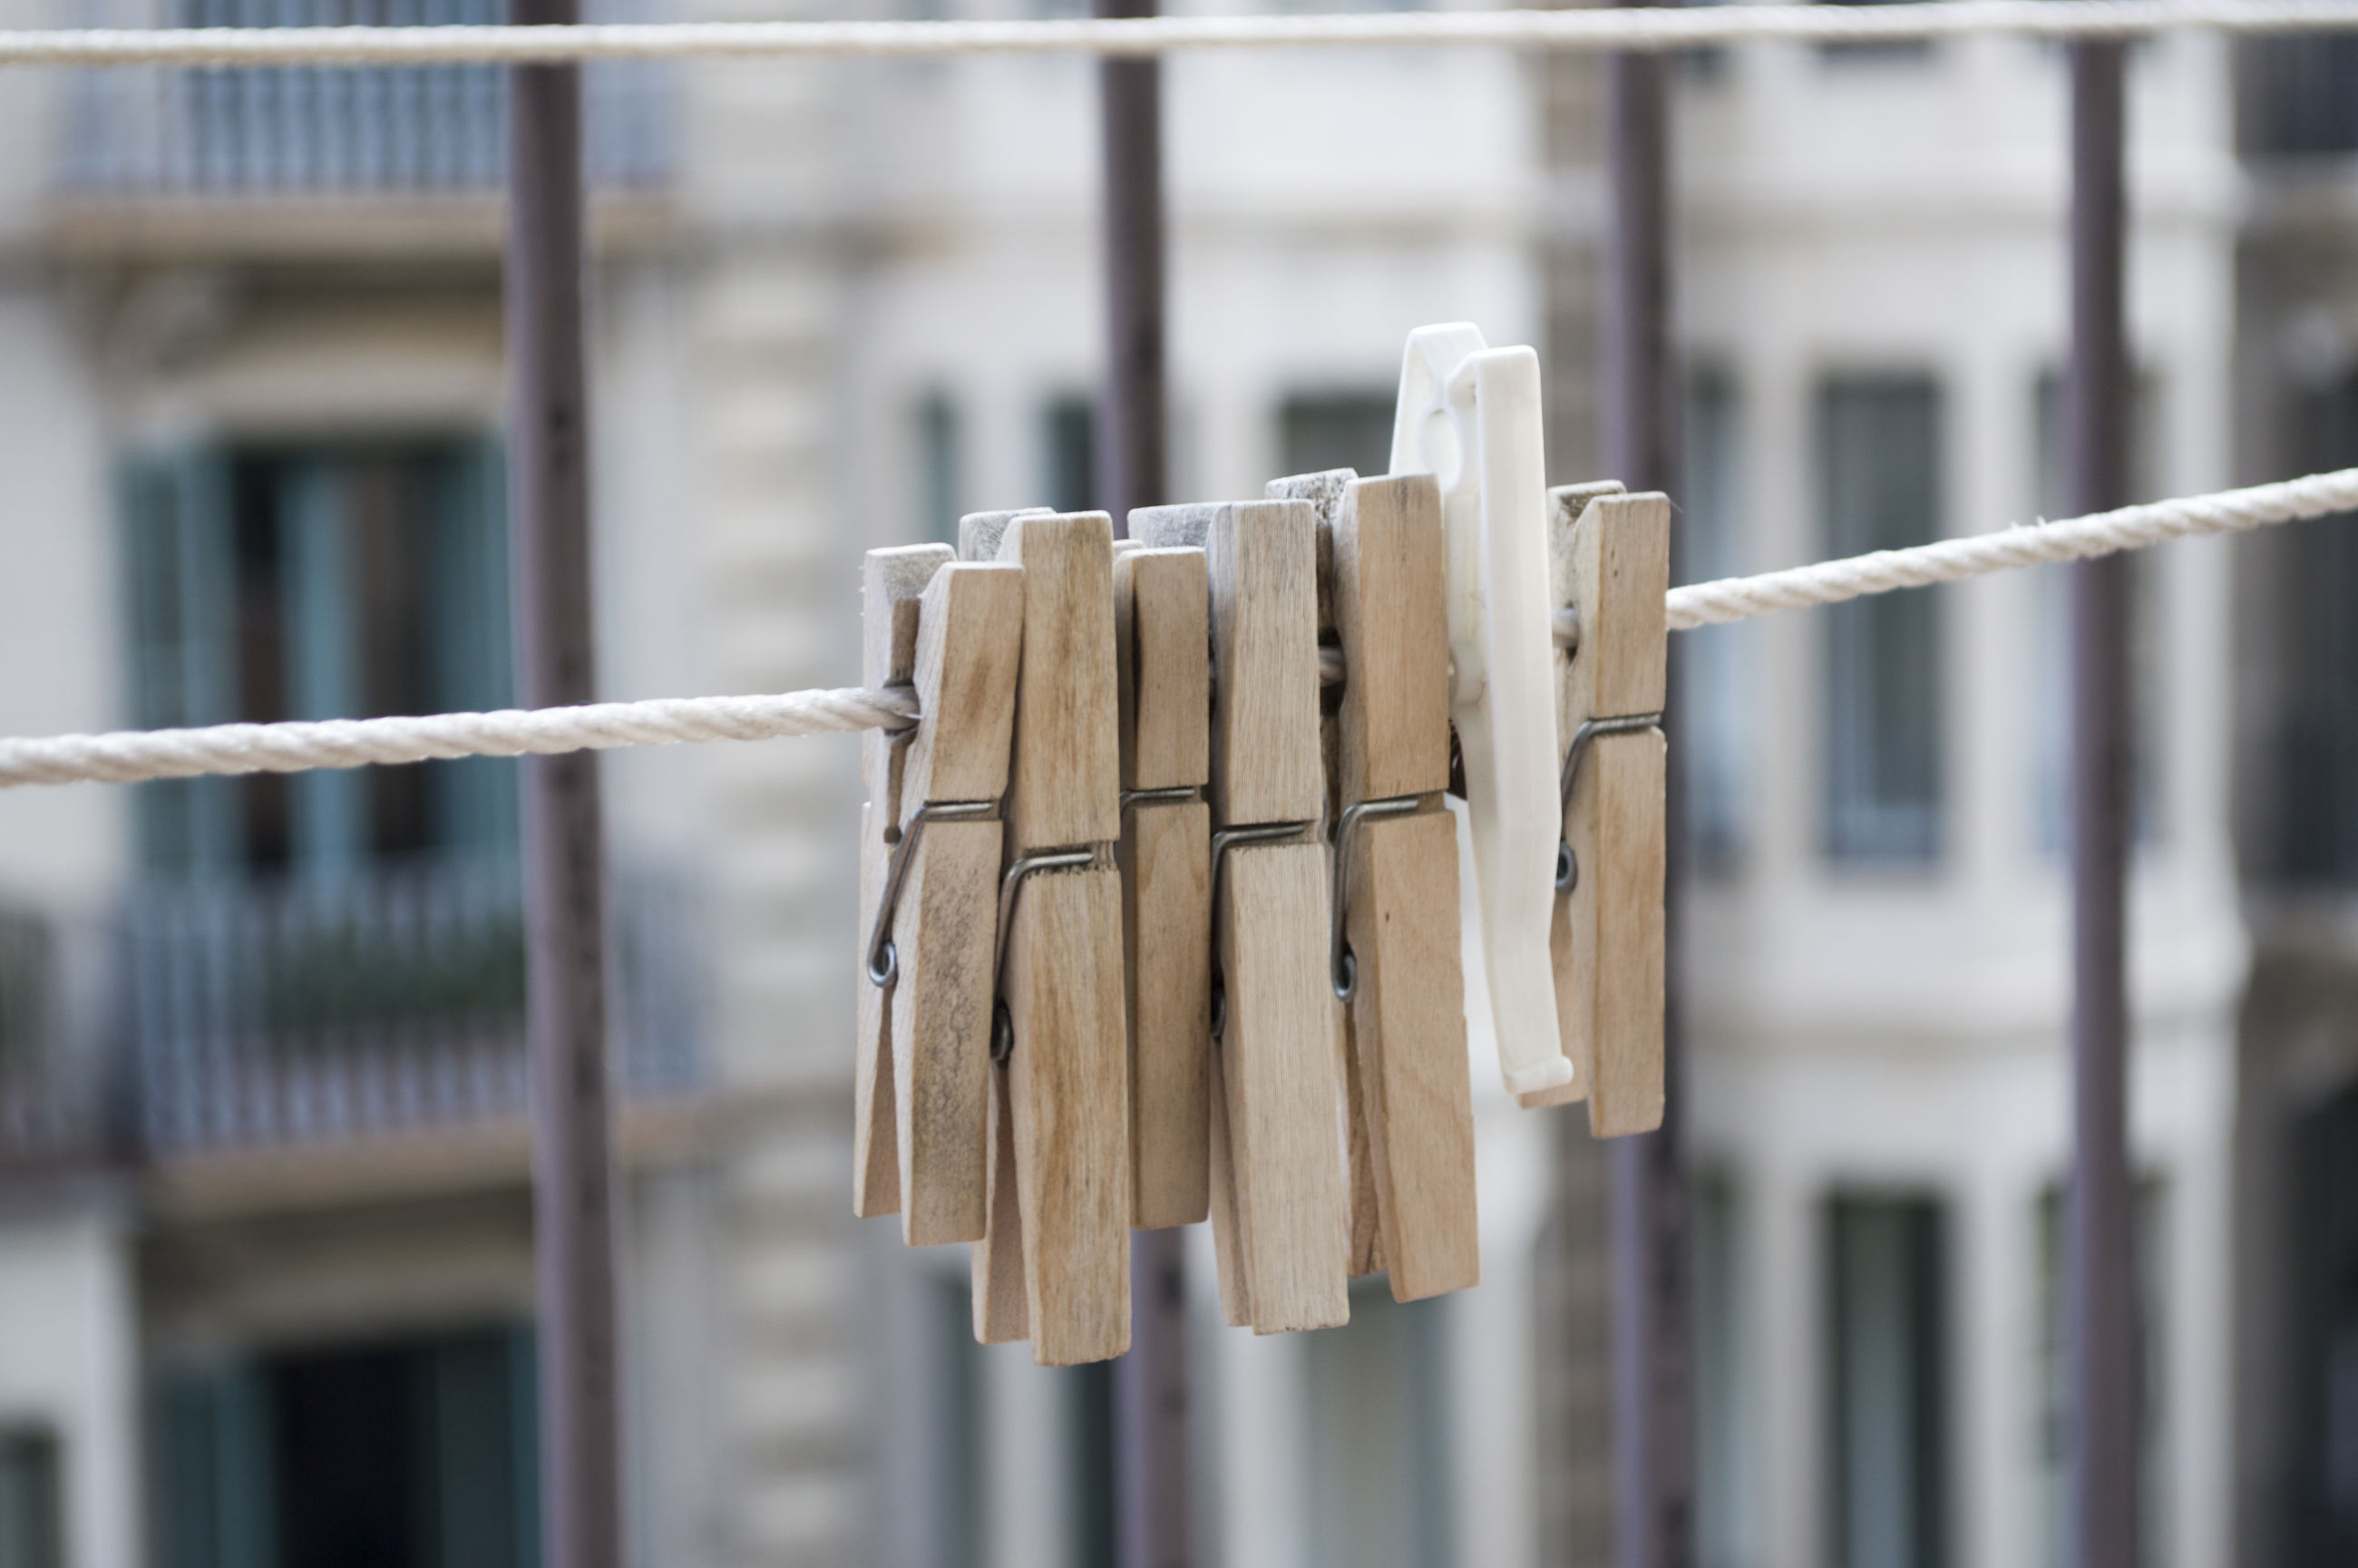 Close-up of clothespin hanging on clothesline